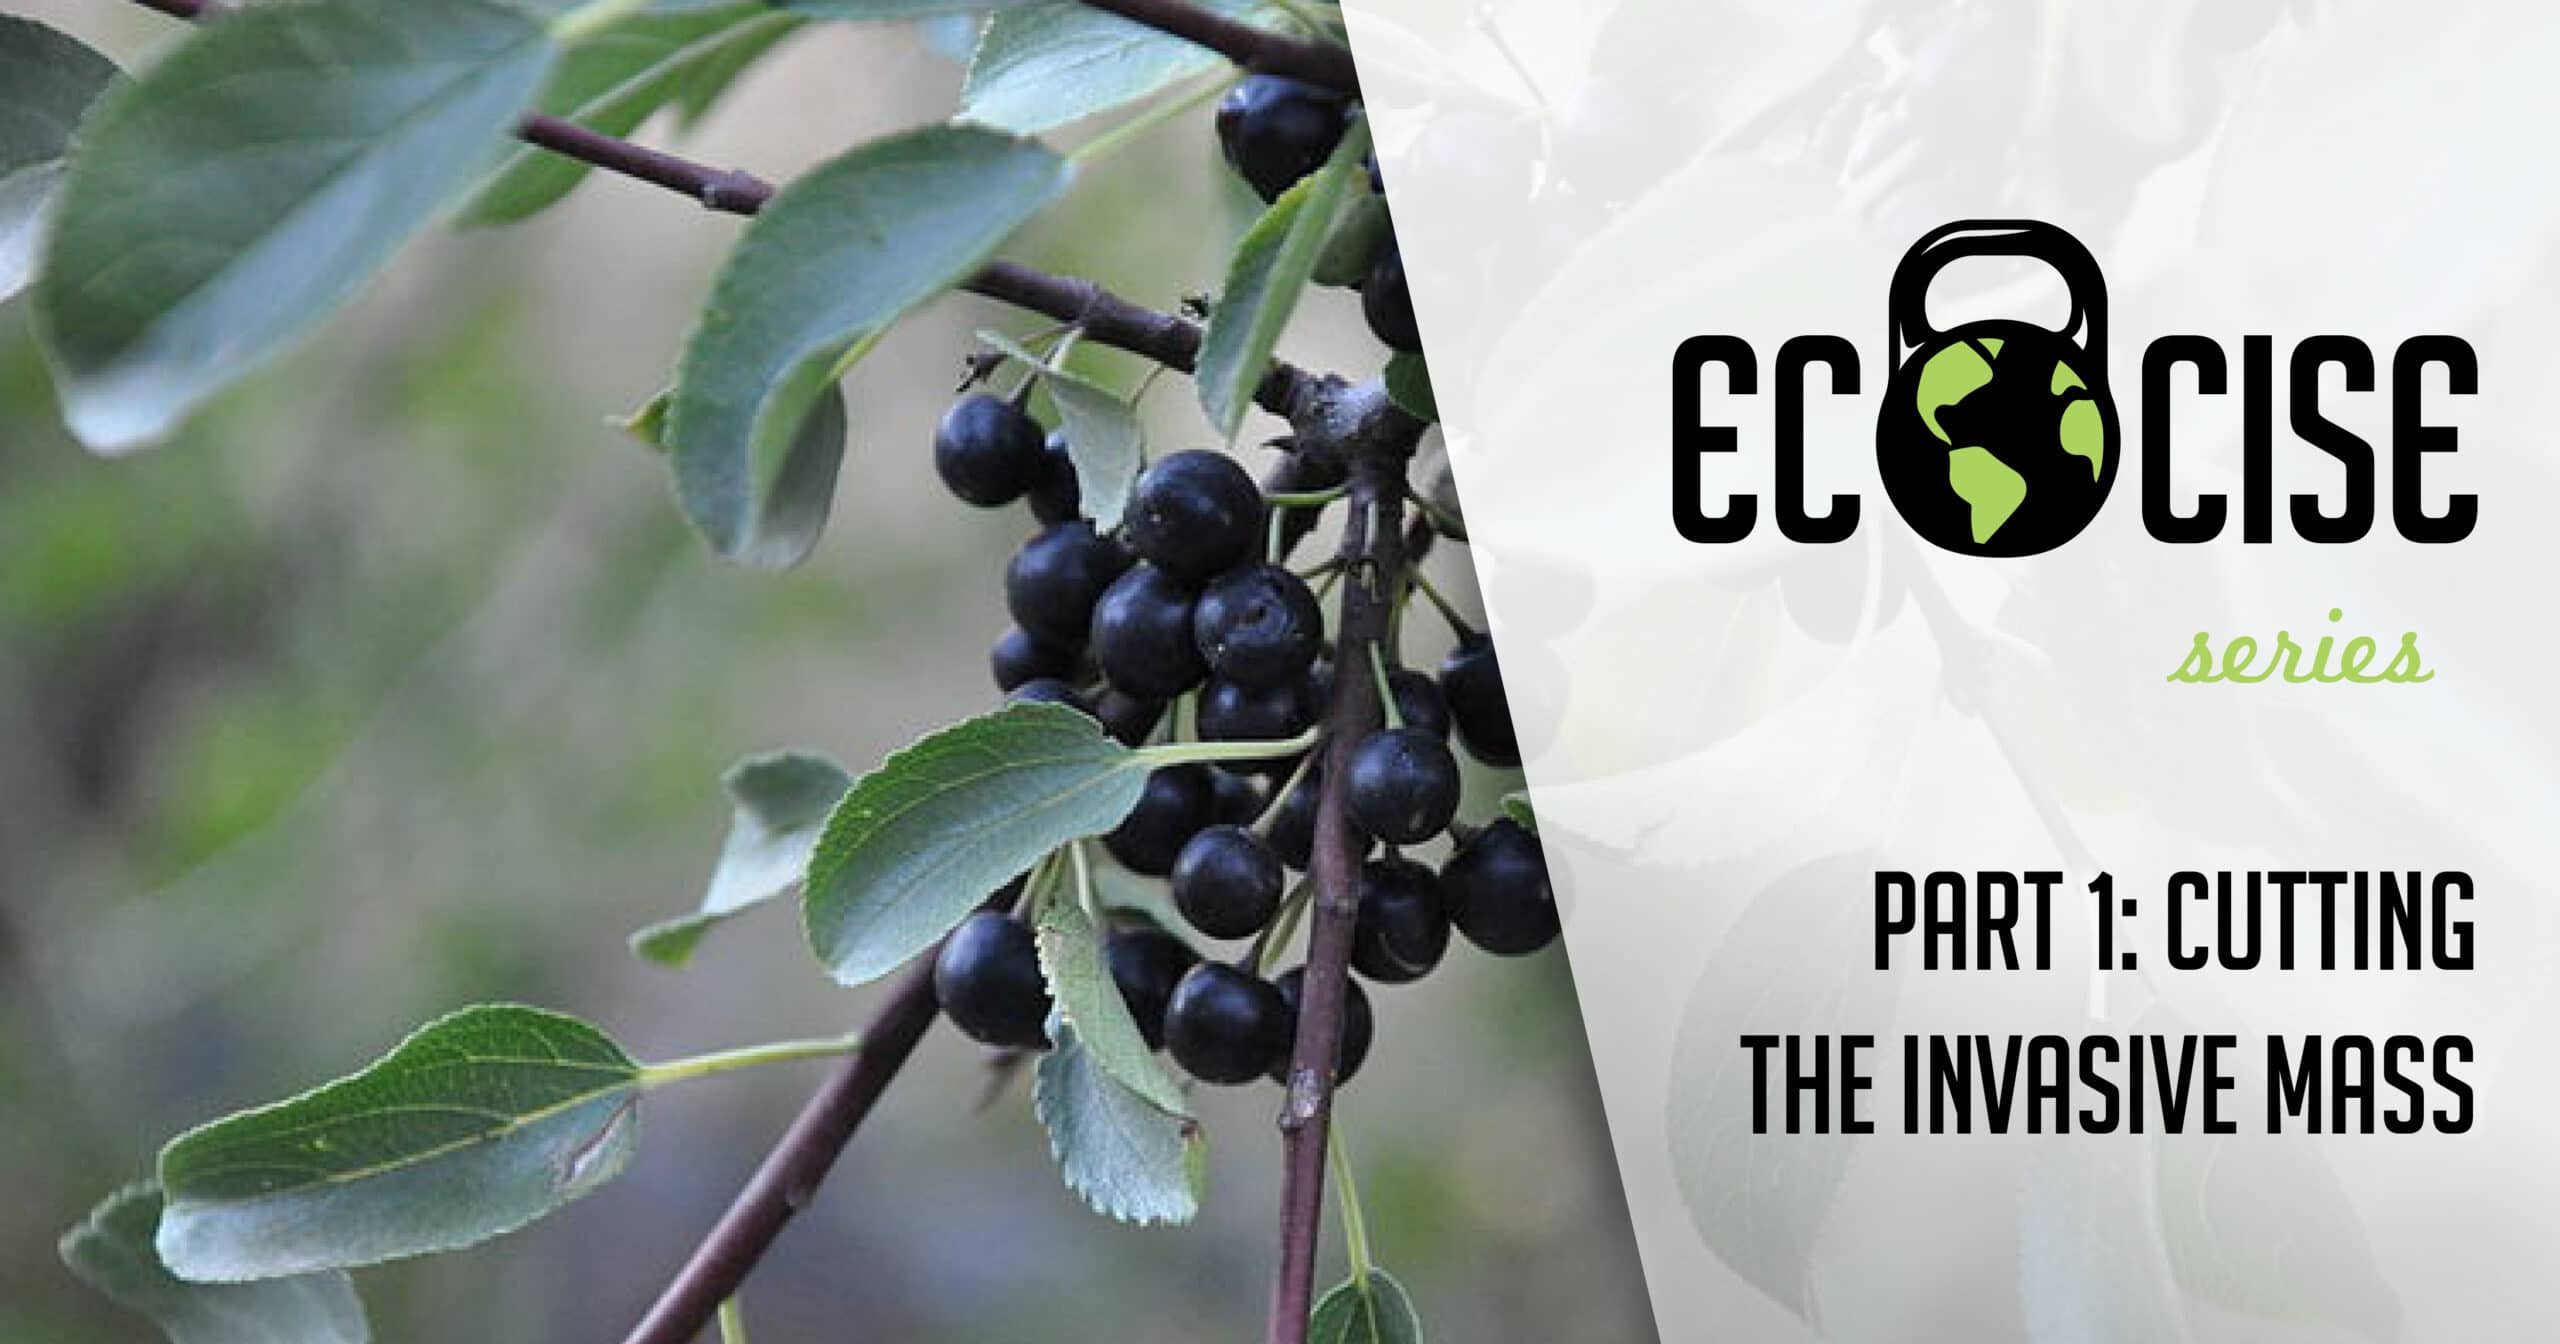 Ecocise! Part I: Cutting the Invasive Mass